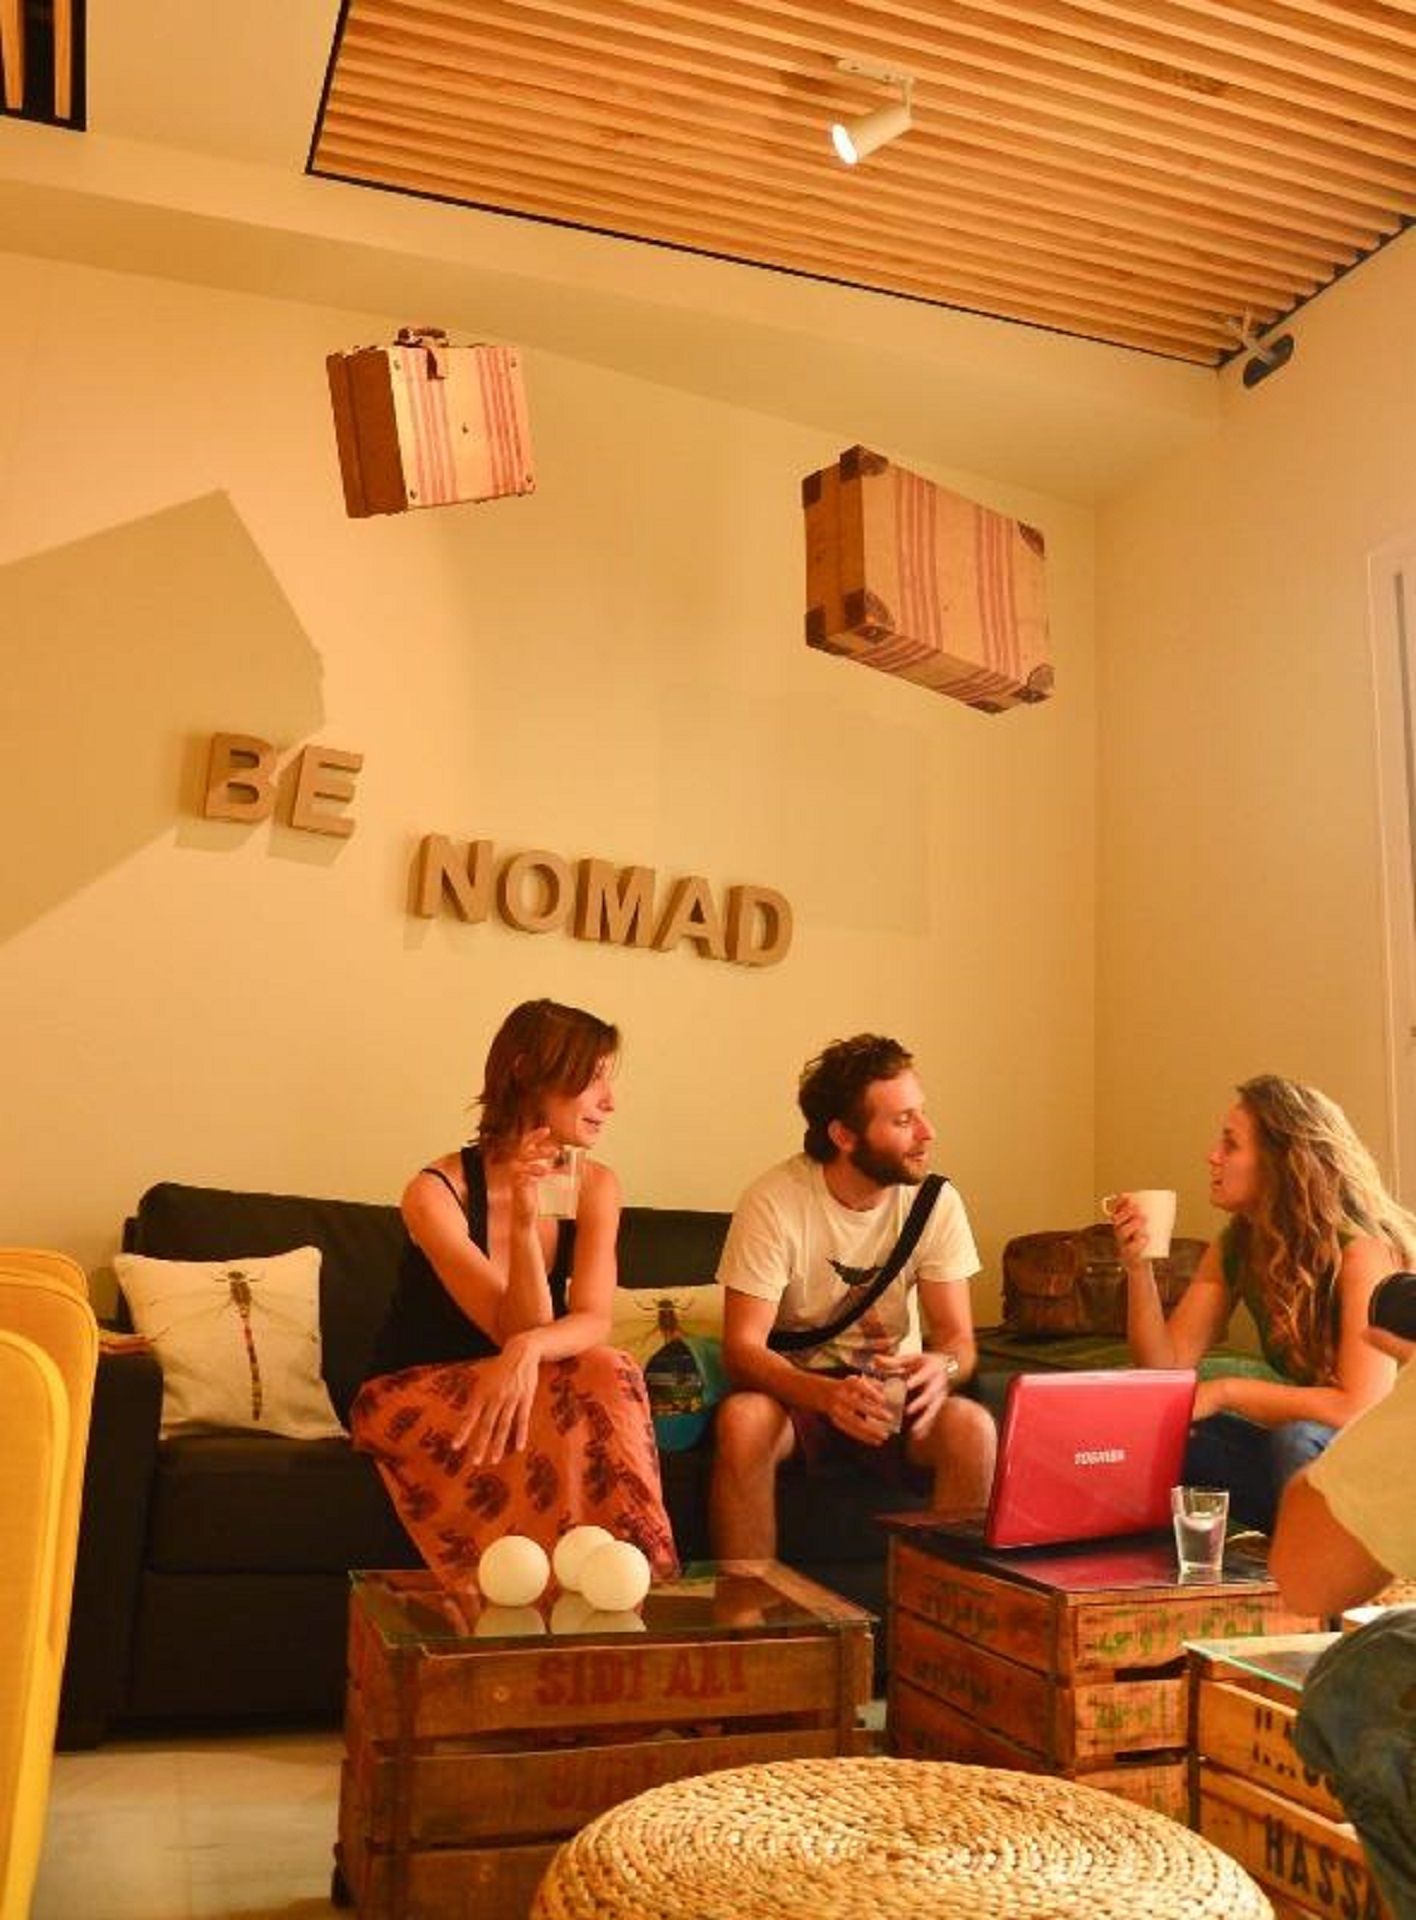 The Nomad Hostel